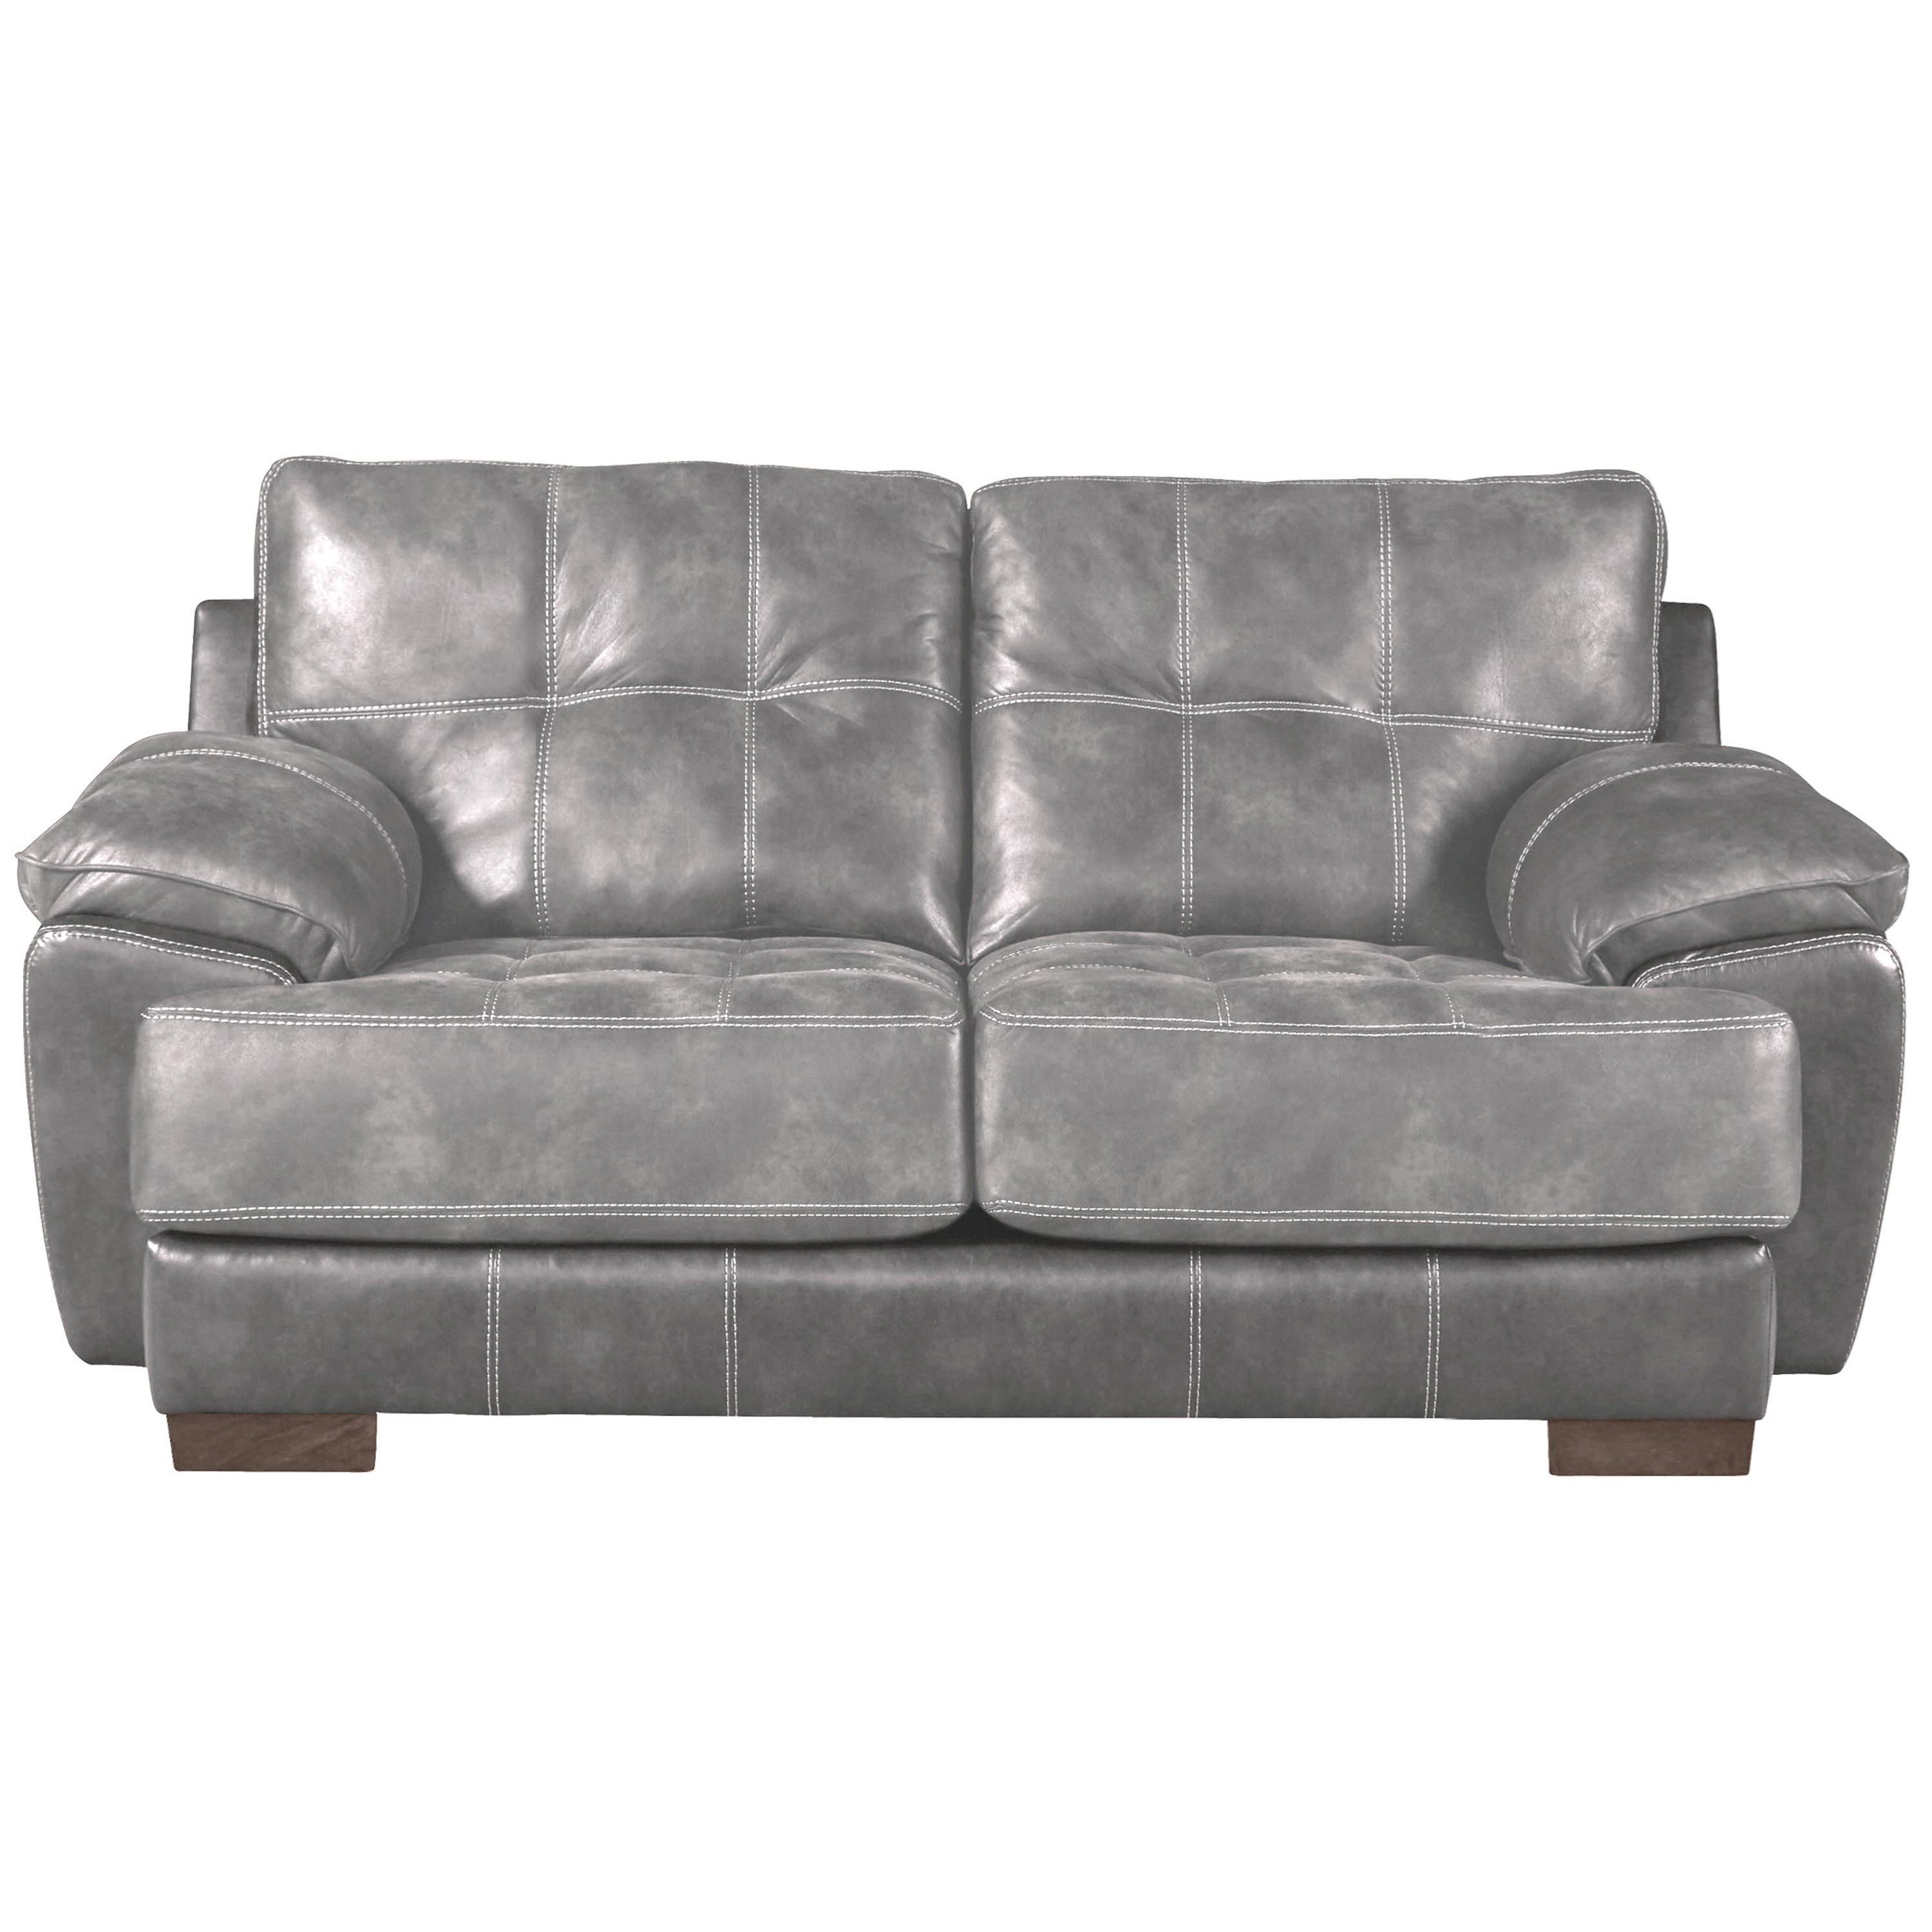 Drummond Two Seat Loveseat by Jackson Furniture at Northeast Factory Direct